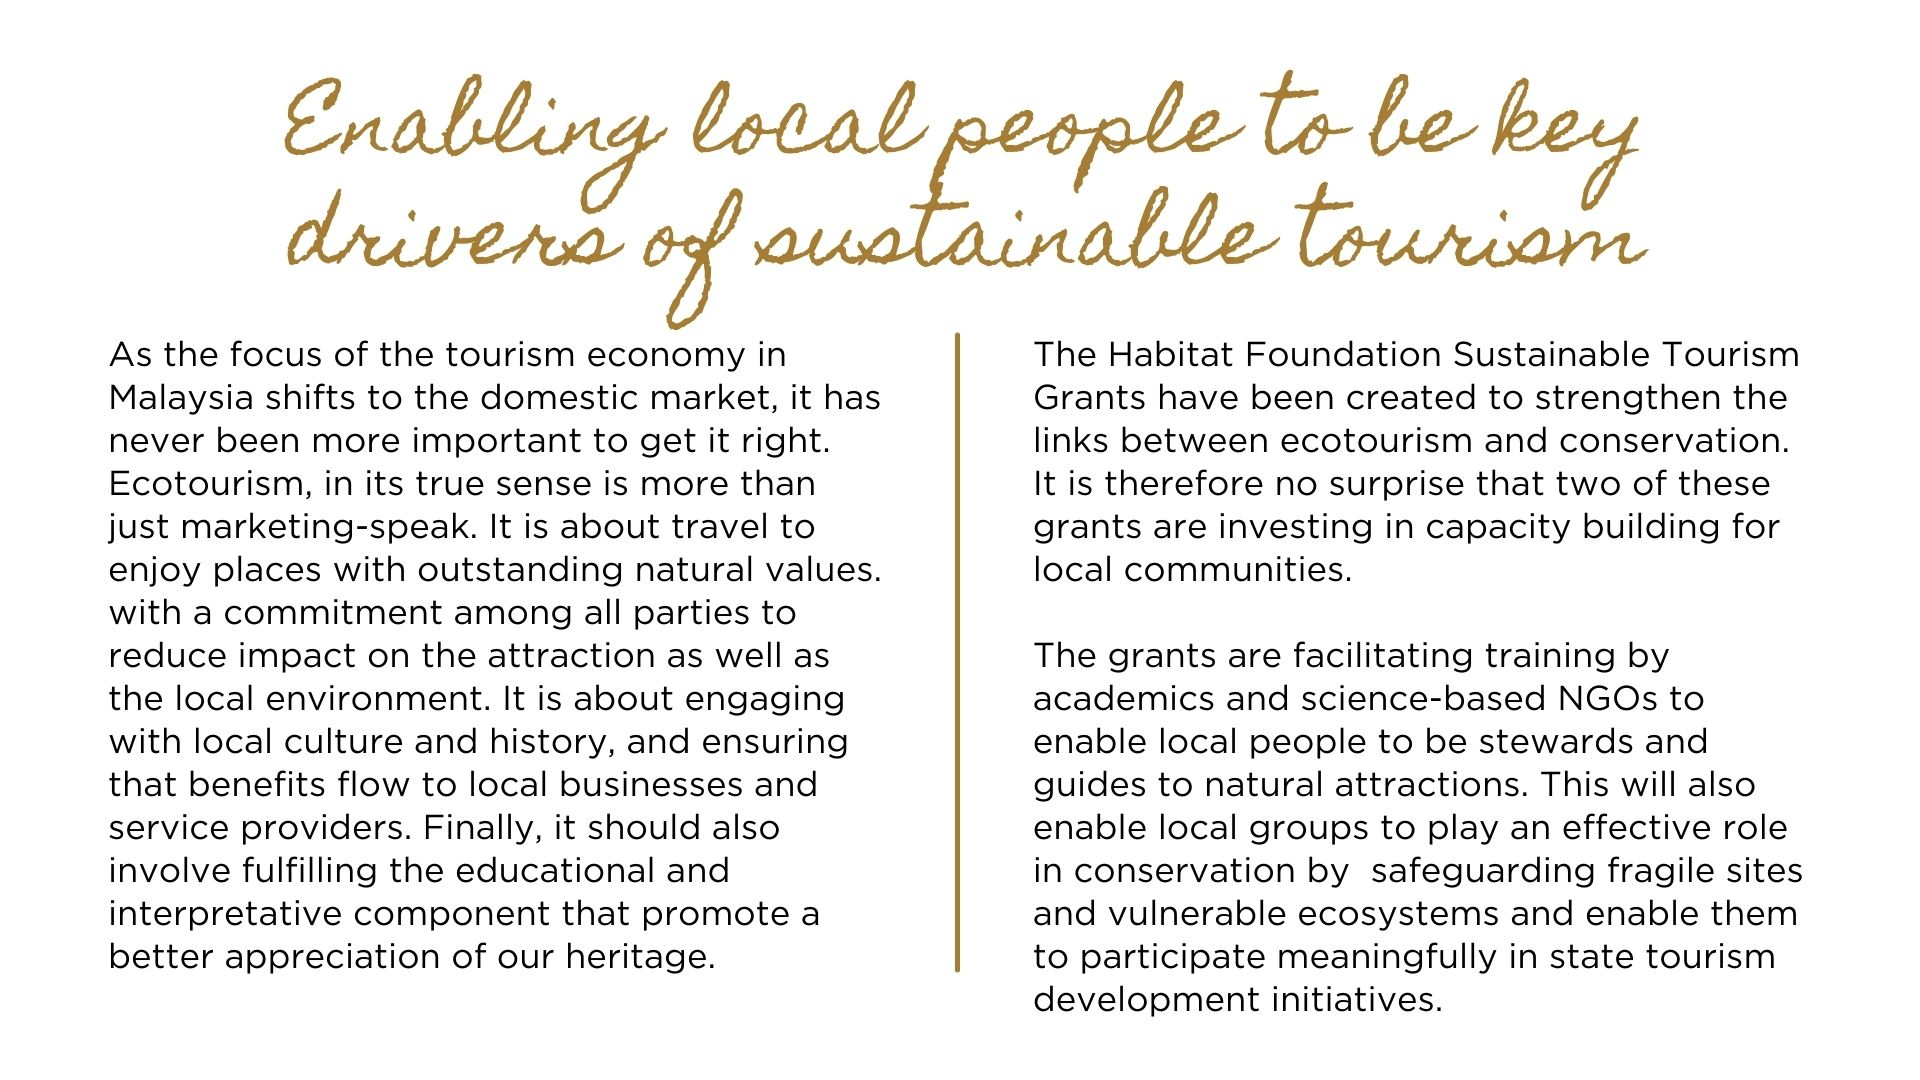 Investing in building local capacity for Sustainable Tourism